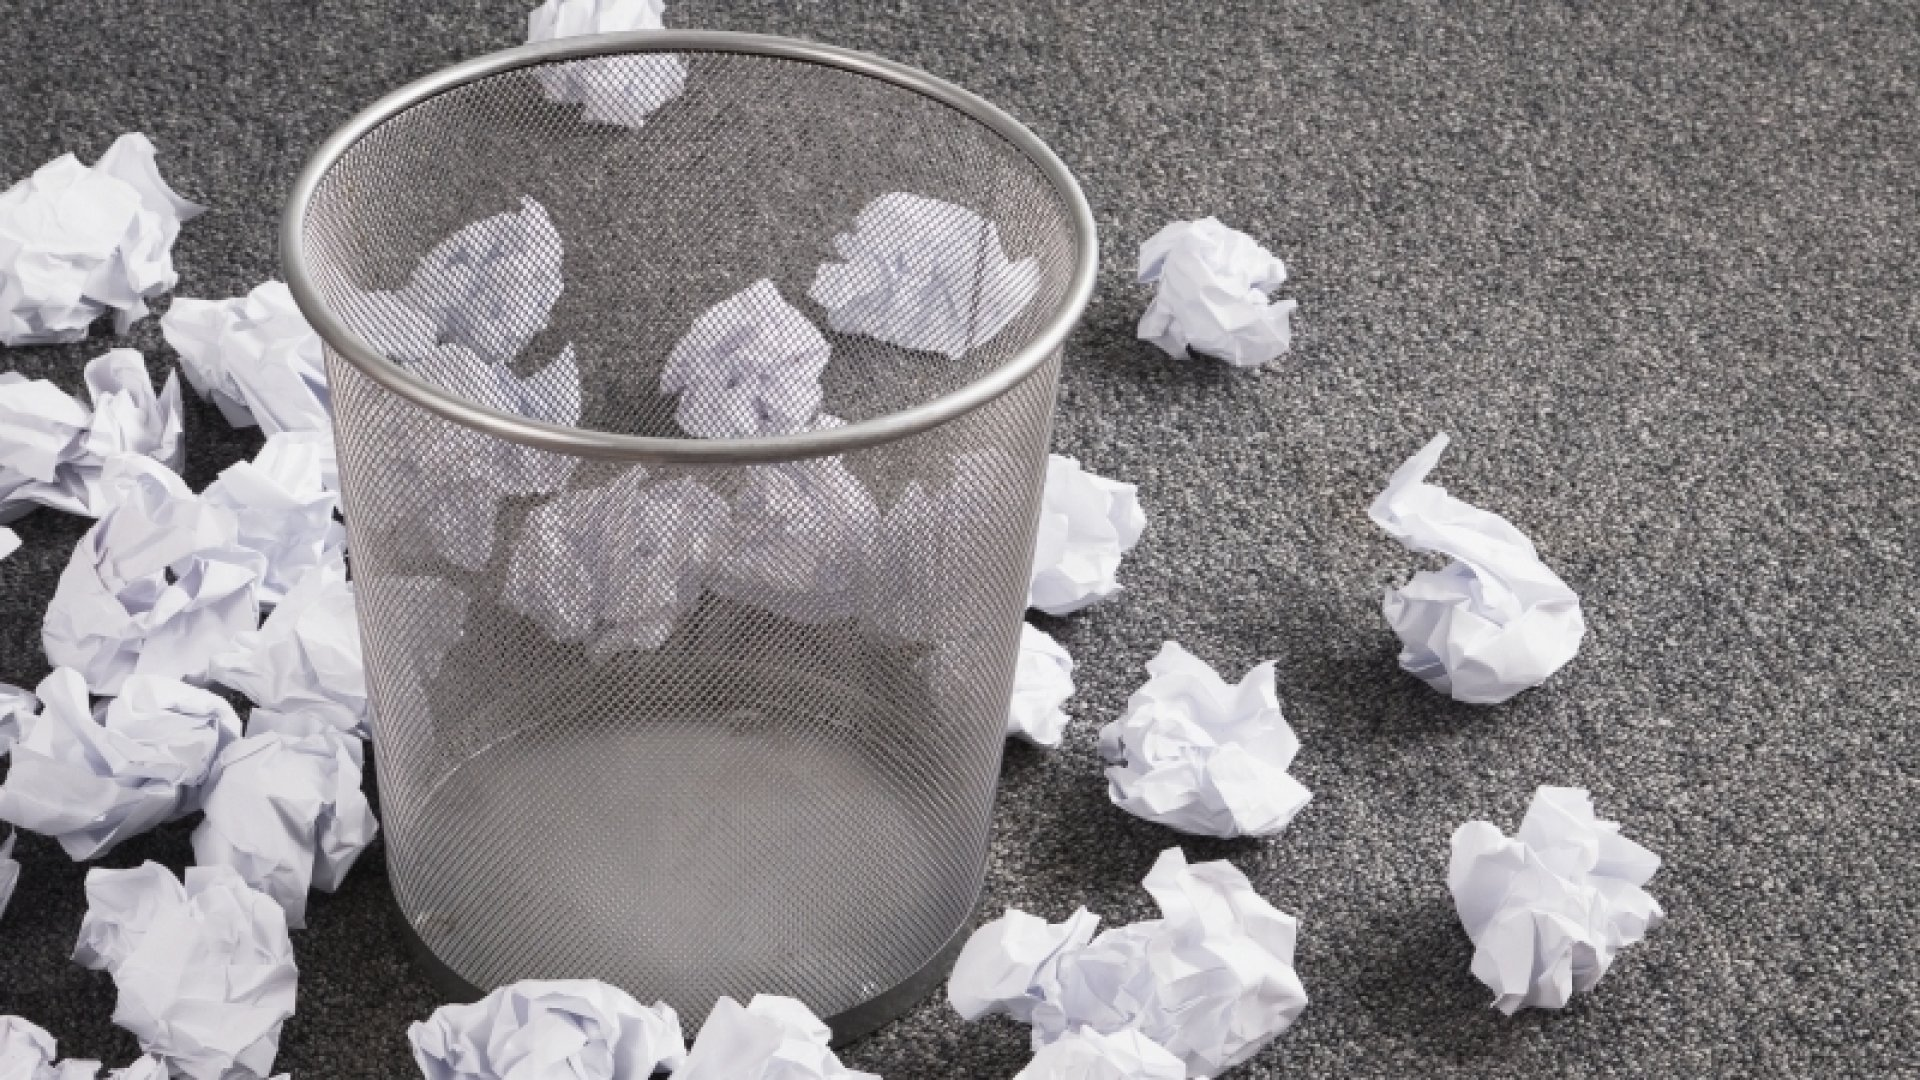 From CRM to BigData: Top 3 mistakes CIOs and CMOs should avoid